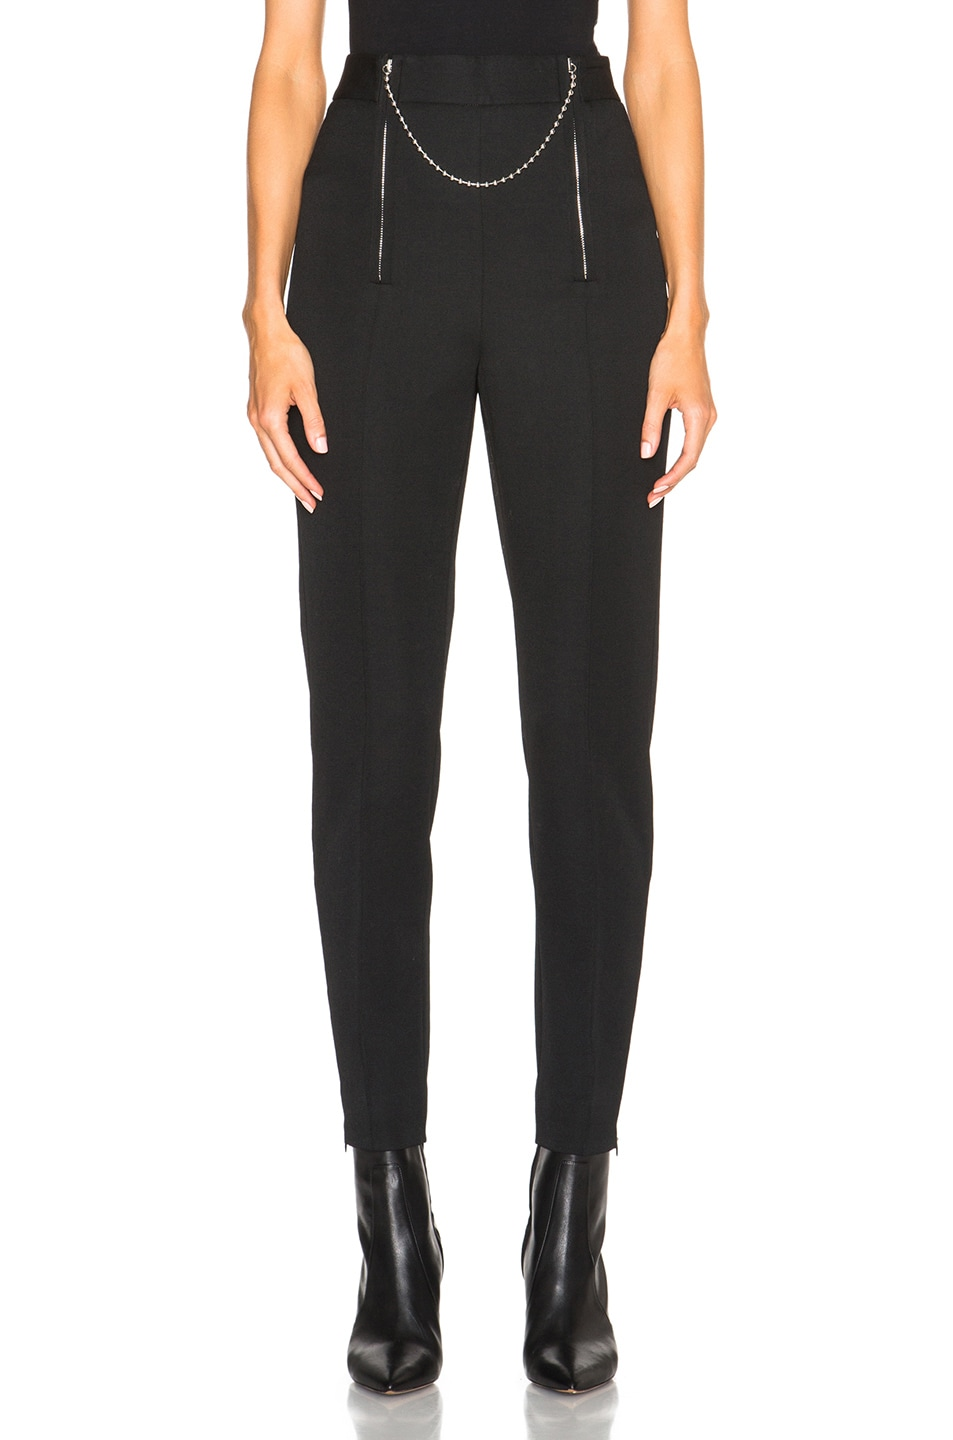 Image 1 of Alexander Wang Wool Tailoring Pants with Ball Chain Zipper in  Nocturnal